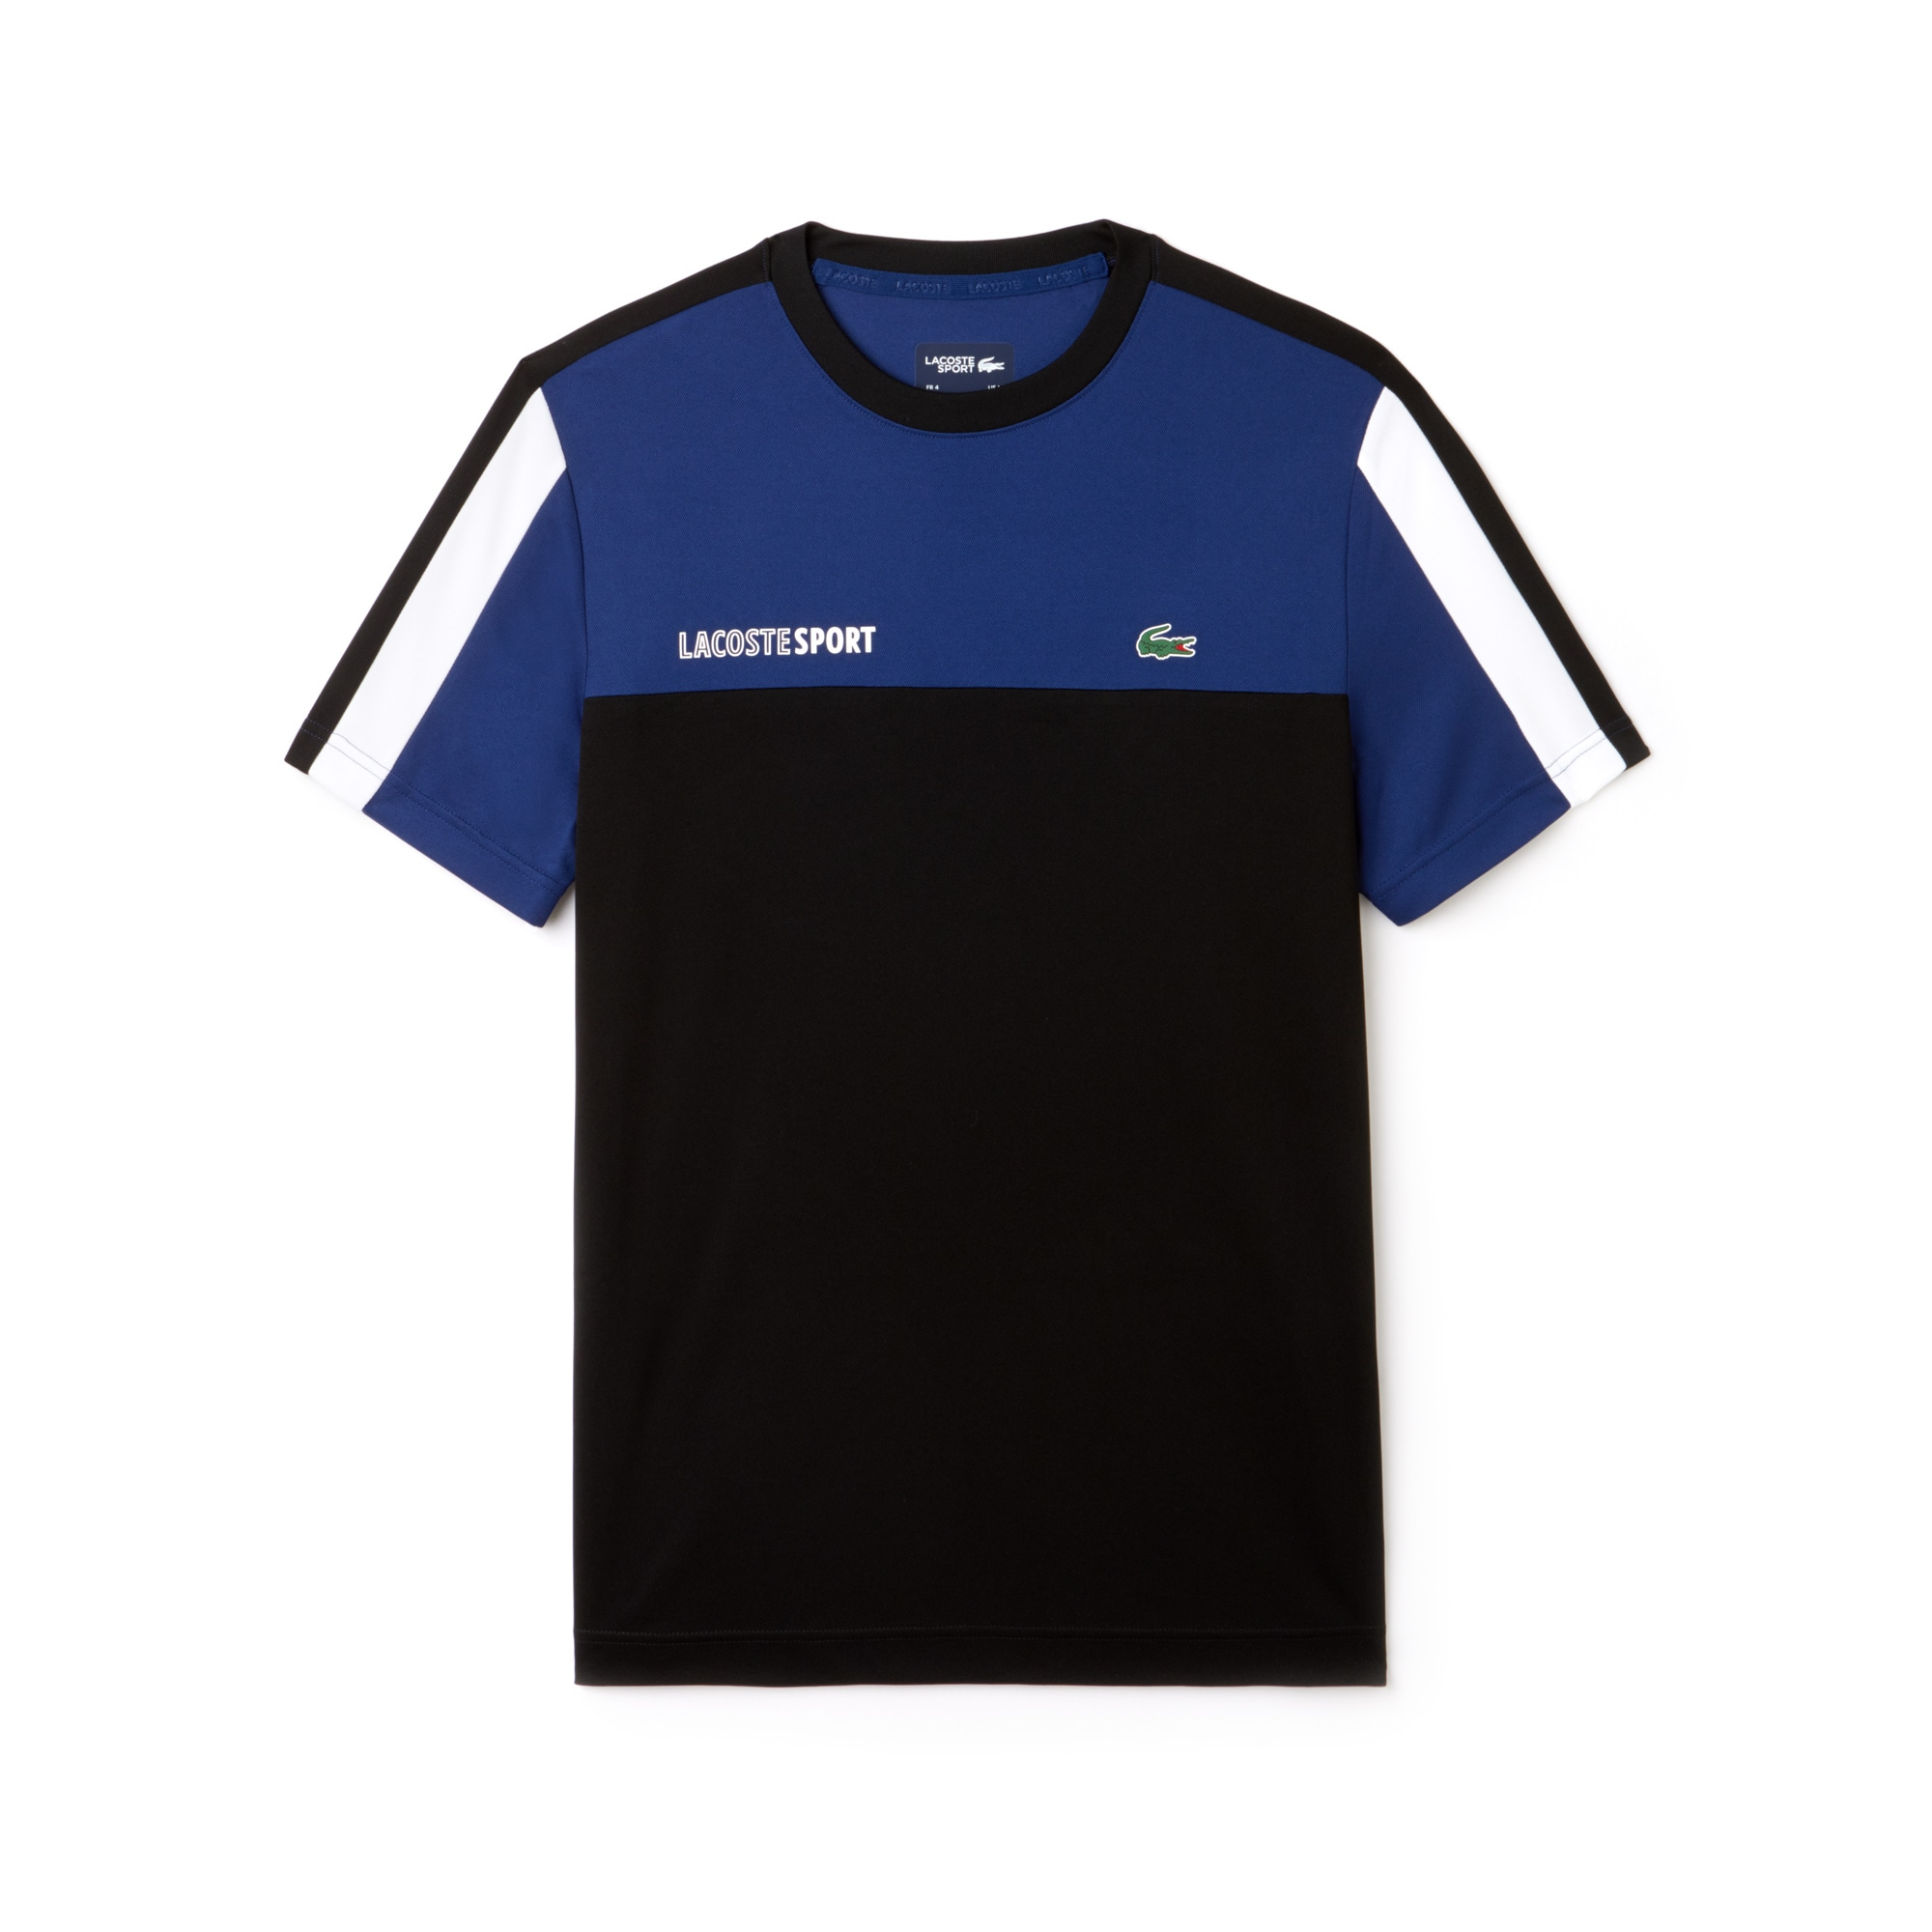 Men's SPORT Crew Neck Colorblock Piqué Tennis T-shirt